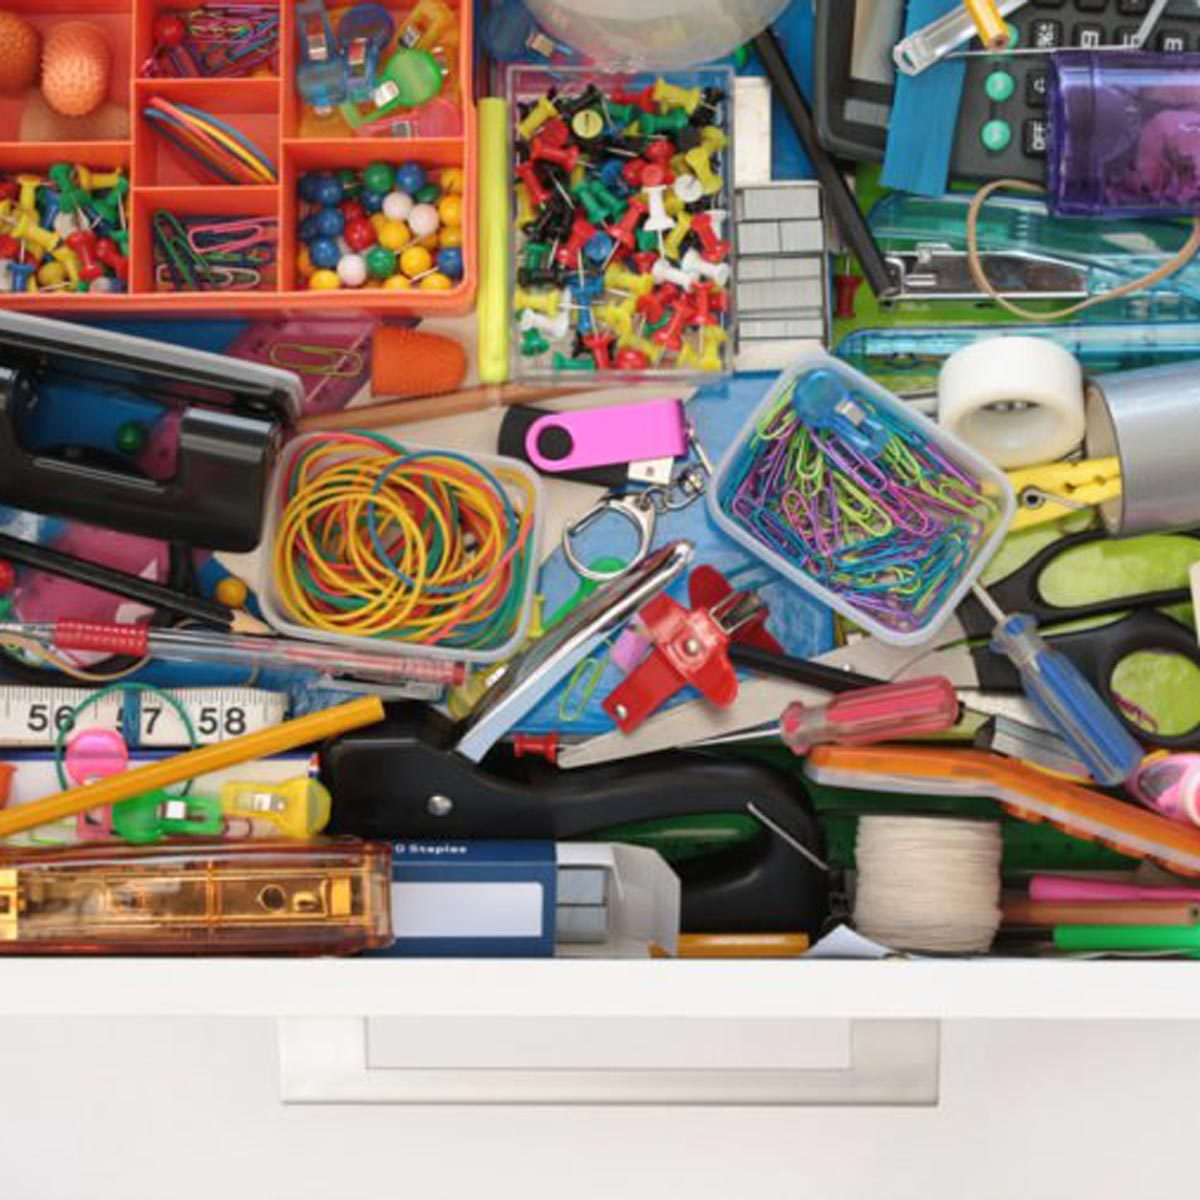 Clean Out The Junk Drawer With These 10 Amazing Tips